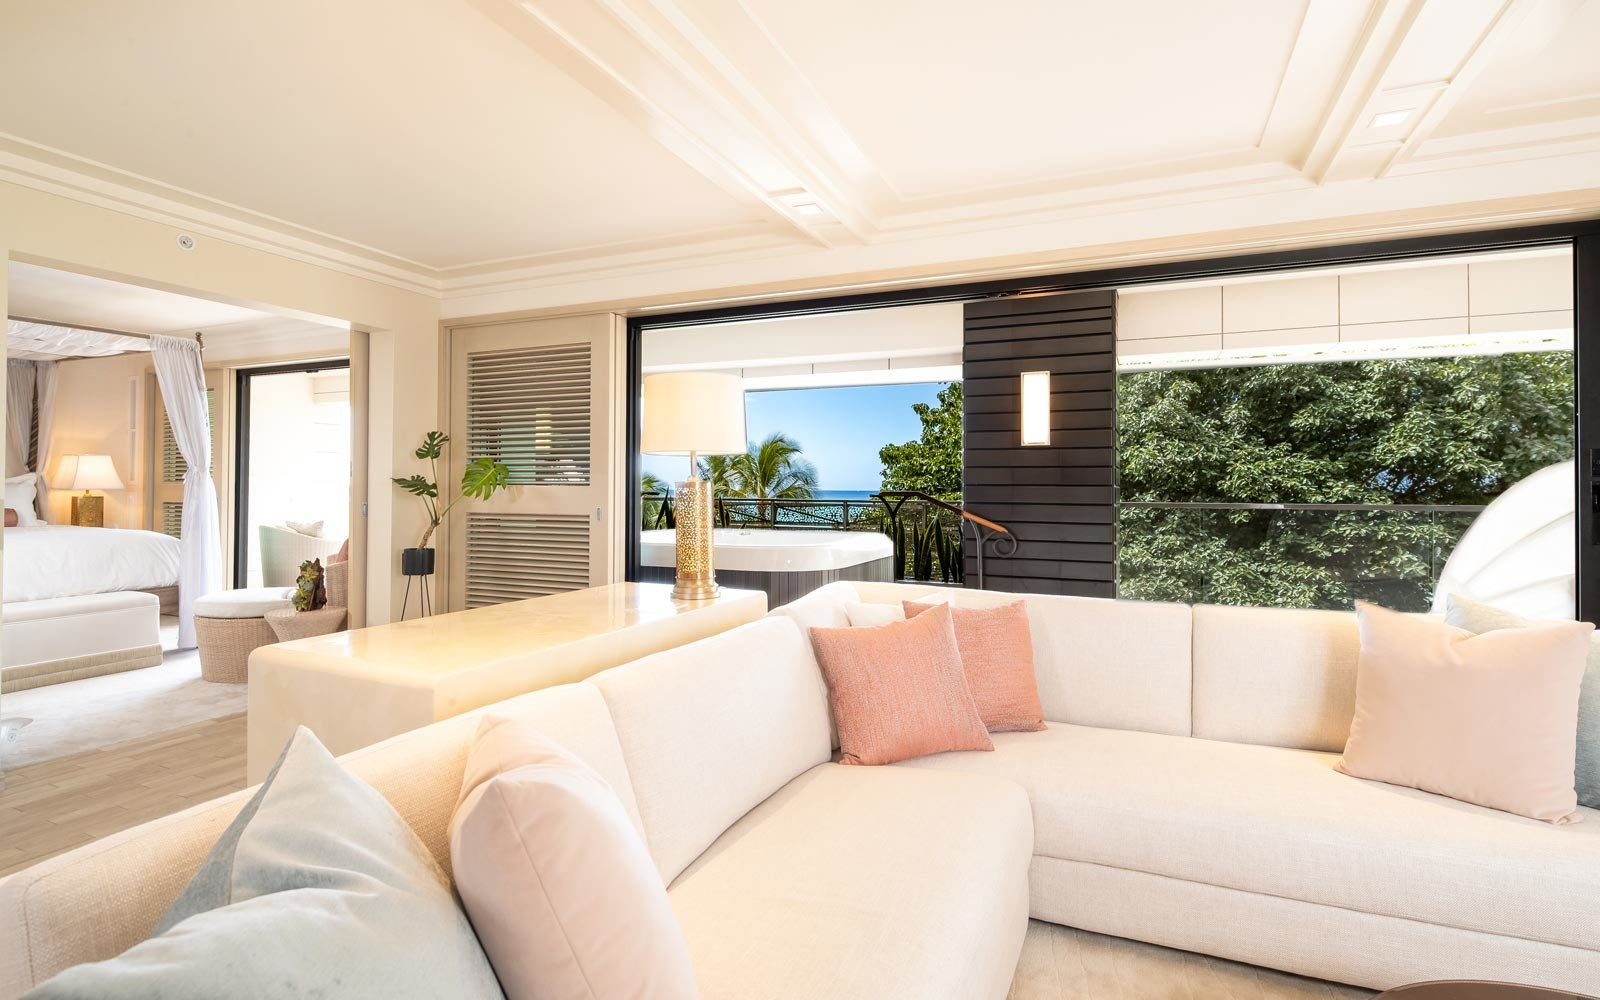 You Can Get Your Own Private Floor at This New Ultra-luxe Waikiki Beach Hotel